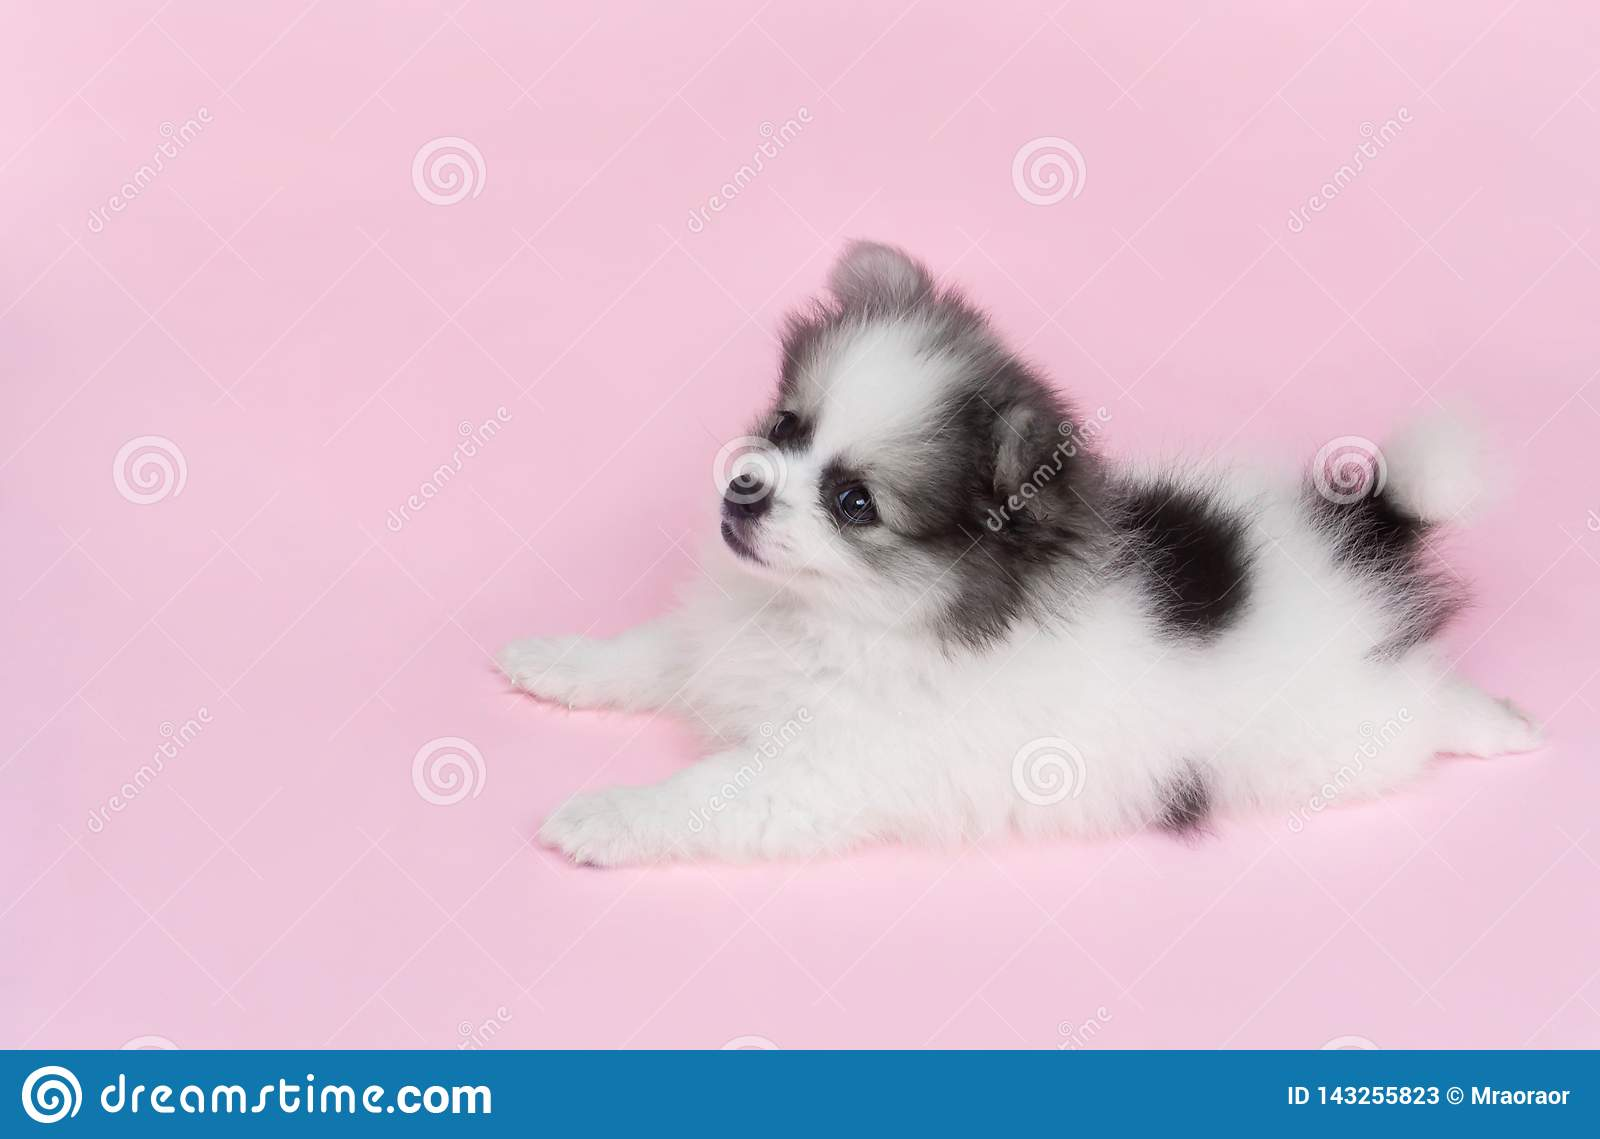 Cute Baby Pomeranian Dog On Pink Background For Pet Health Care Concept Selective Focus Stock Image Image Of Breed Domestic 143255823